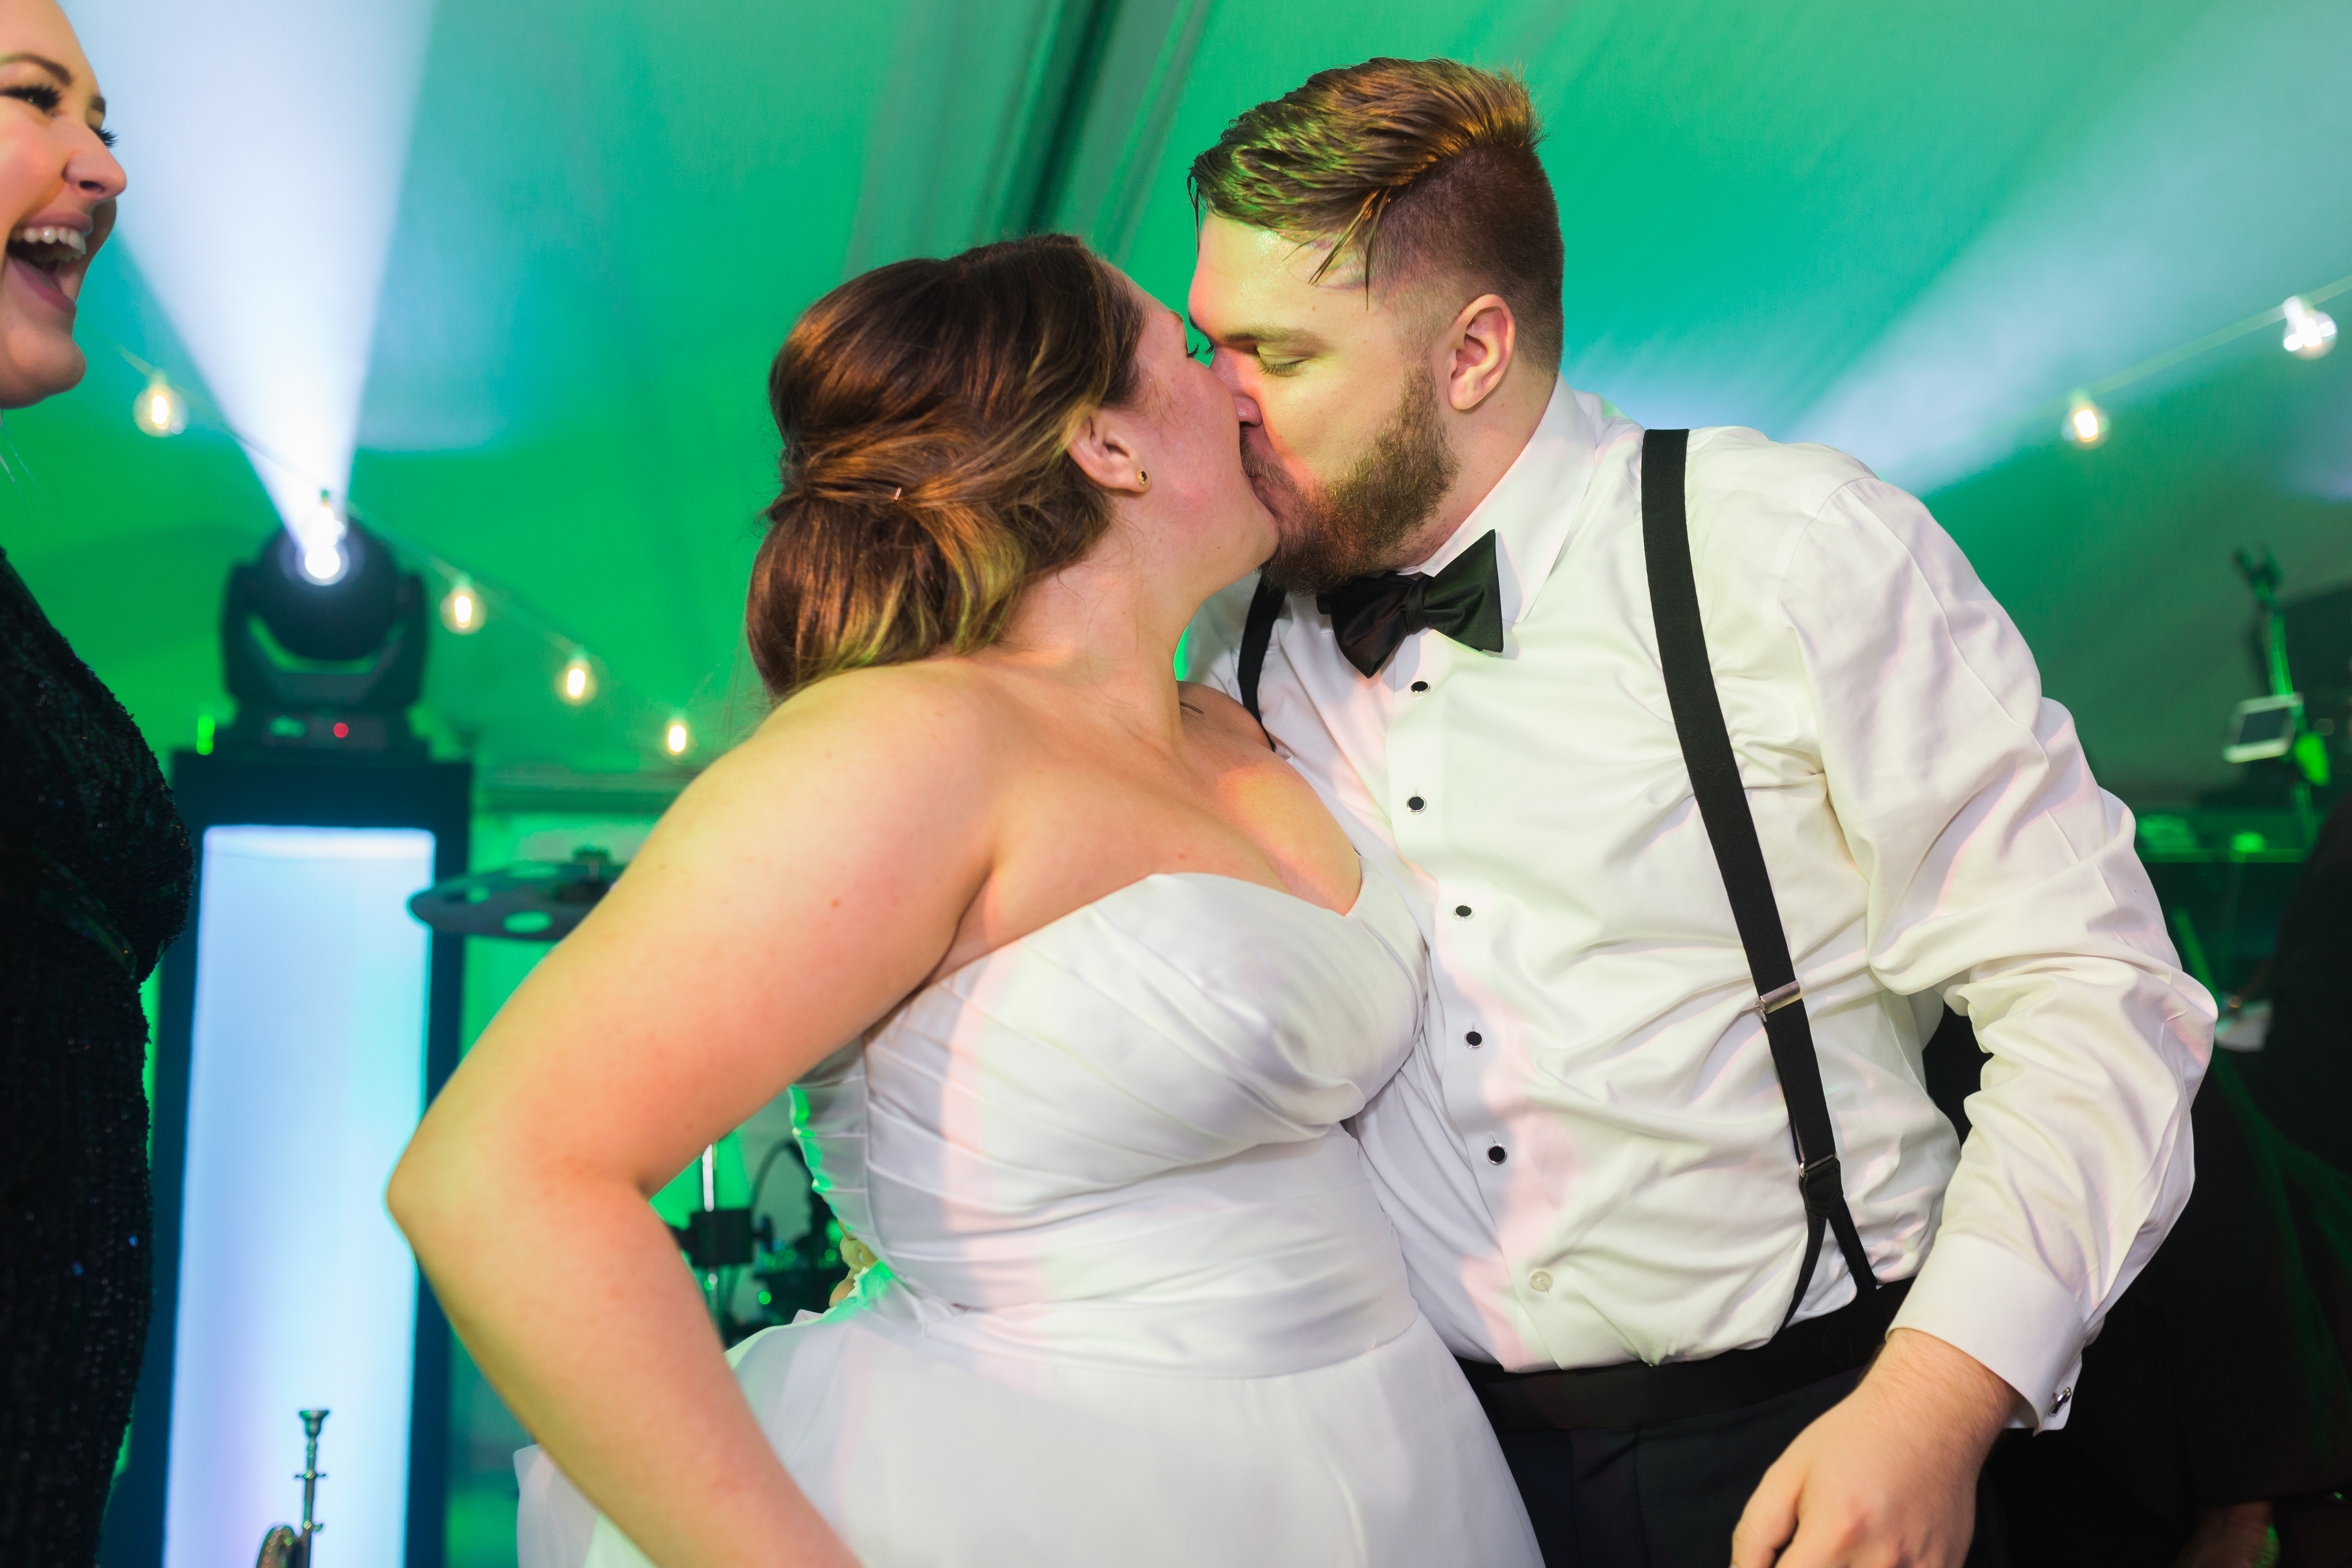 Wedding reception embrace between bride and groom party music provided by Punch by East Coast Entertainment